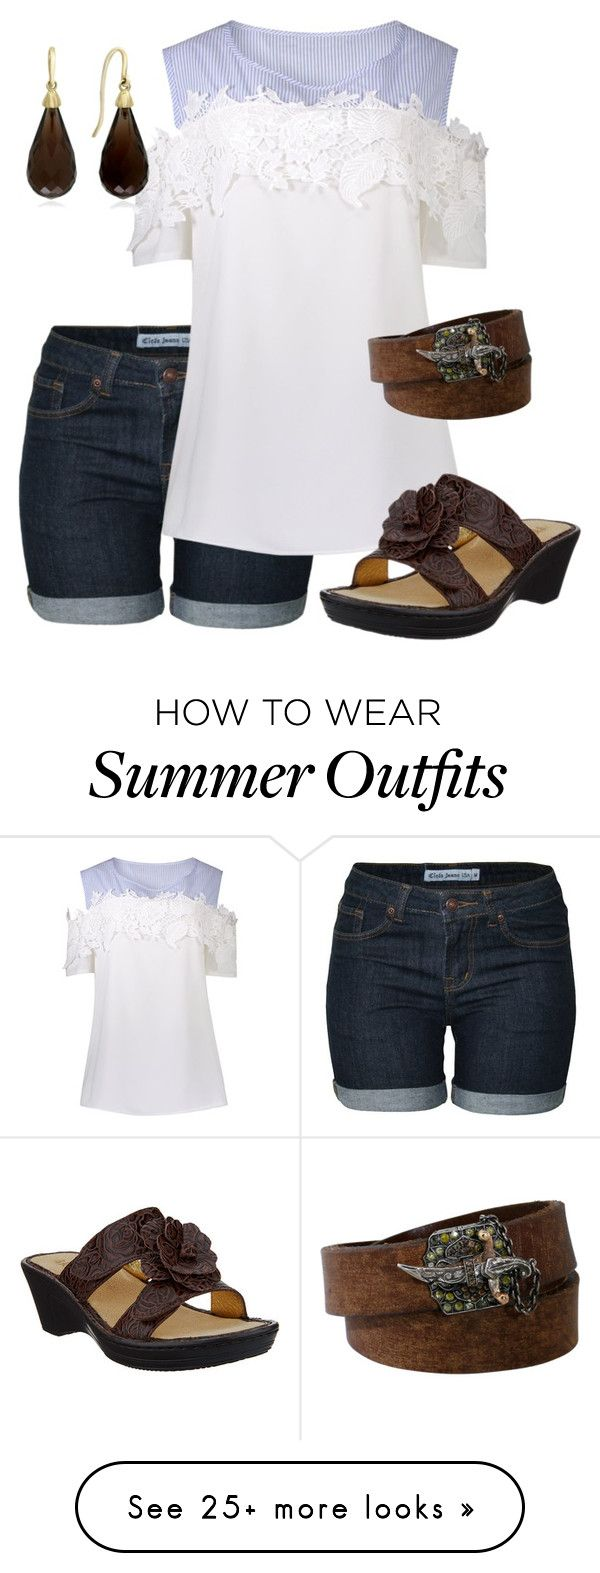 """Summer Shorts"" by debatron on Polyvore featuring Sevan Biçakçi ..."